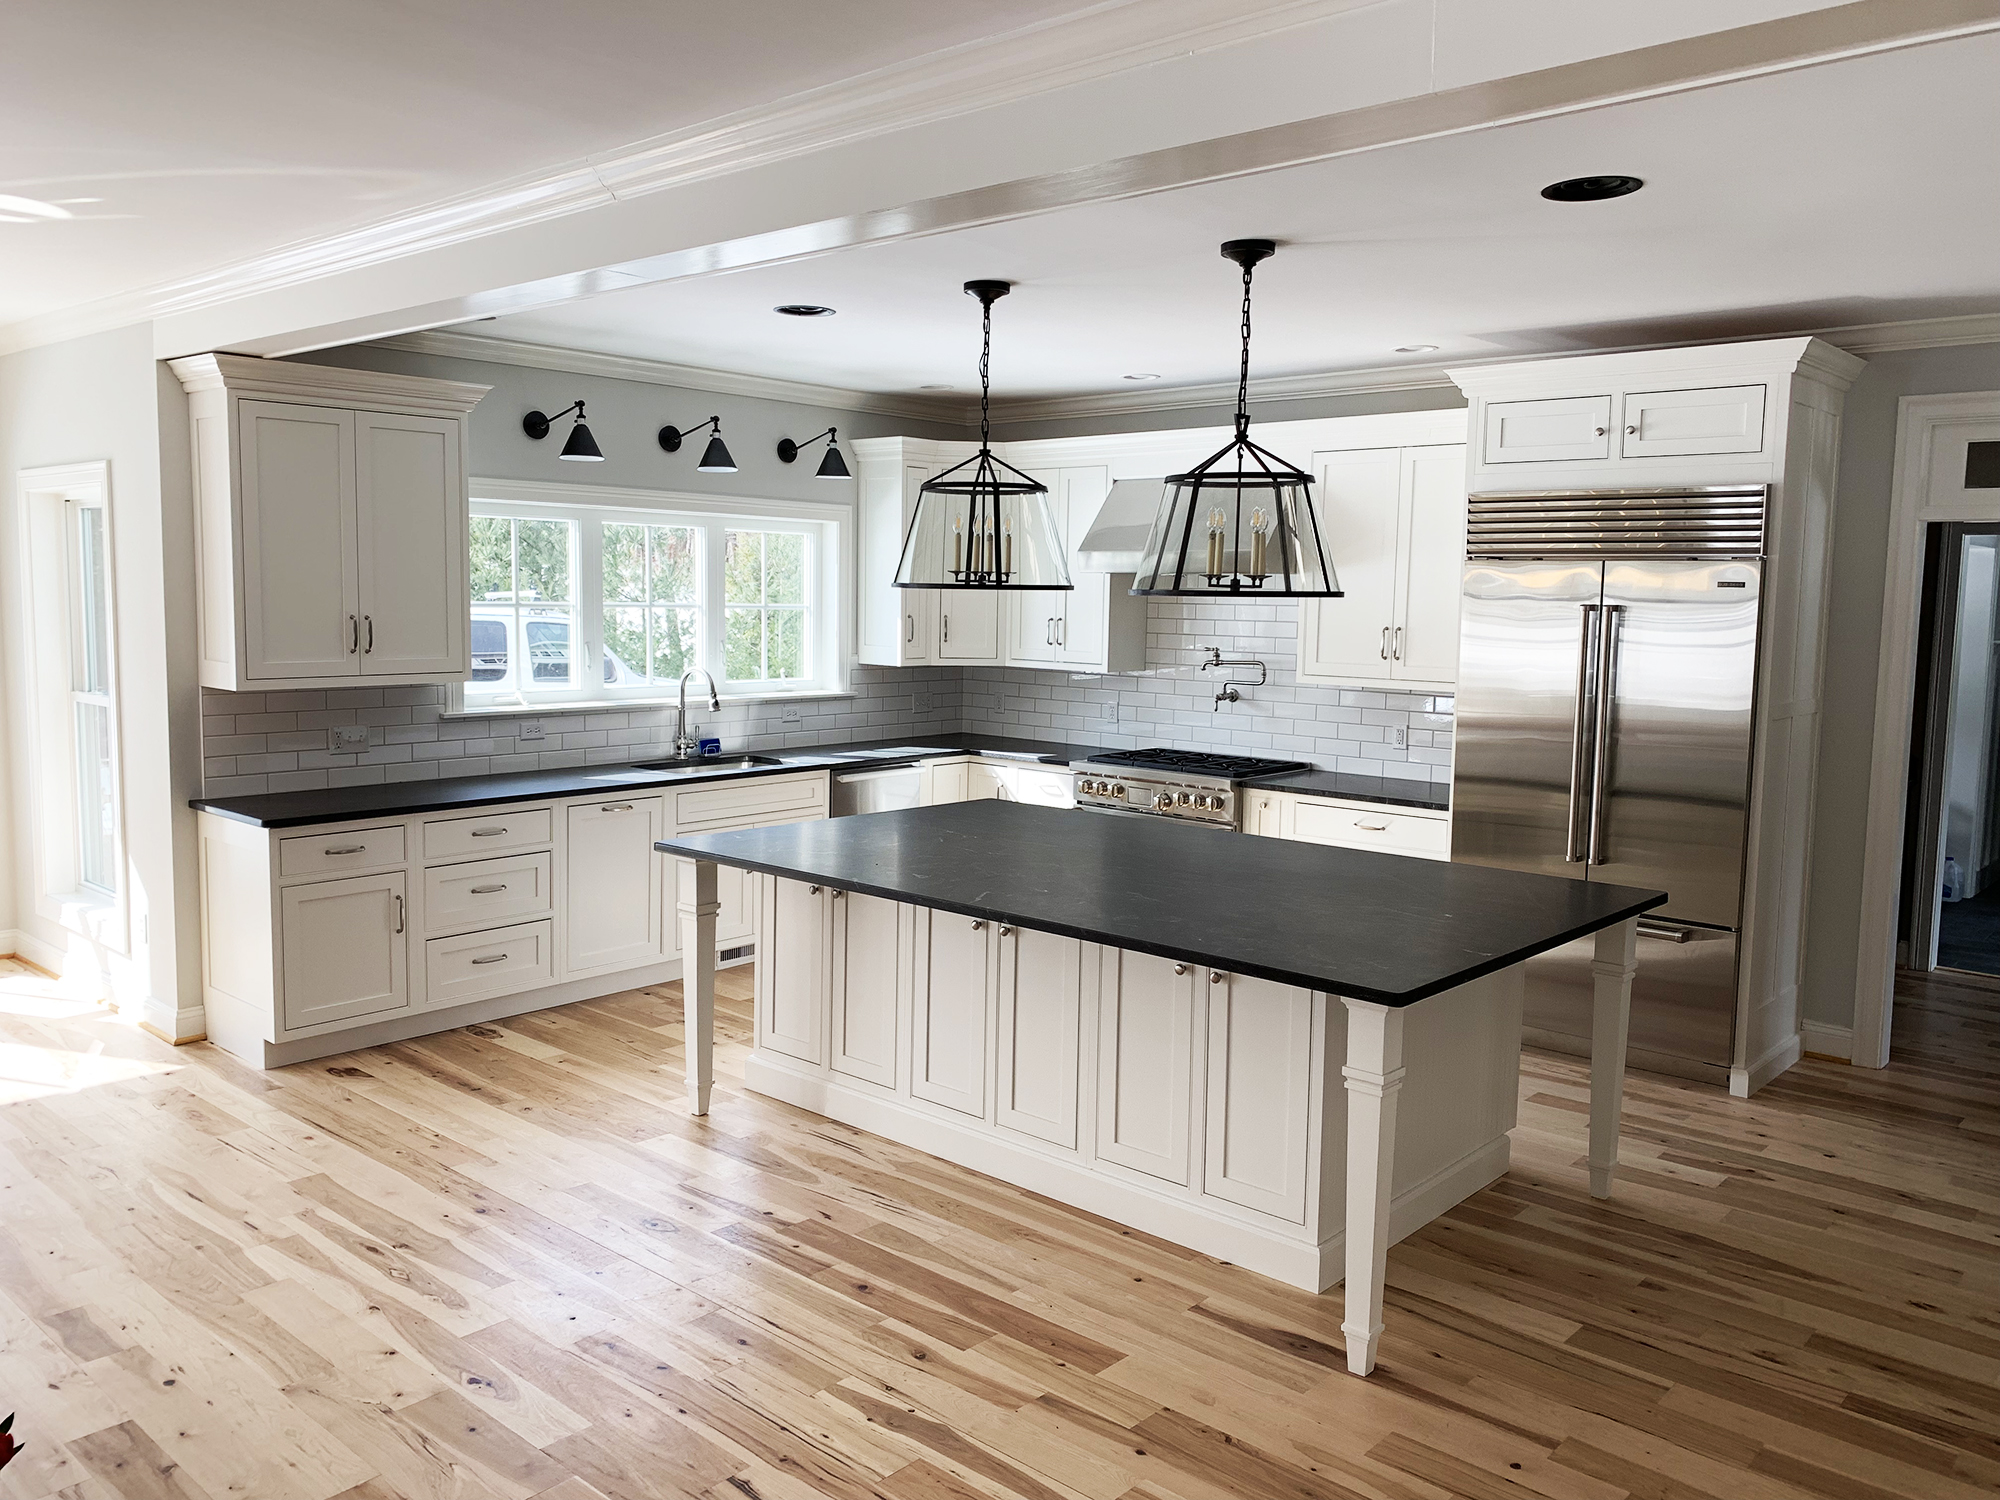 Another Kitchen Remodel from Residential Woodcrafts, Inc.